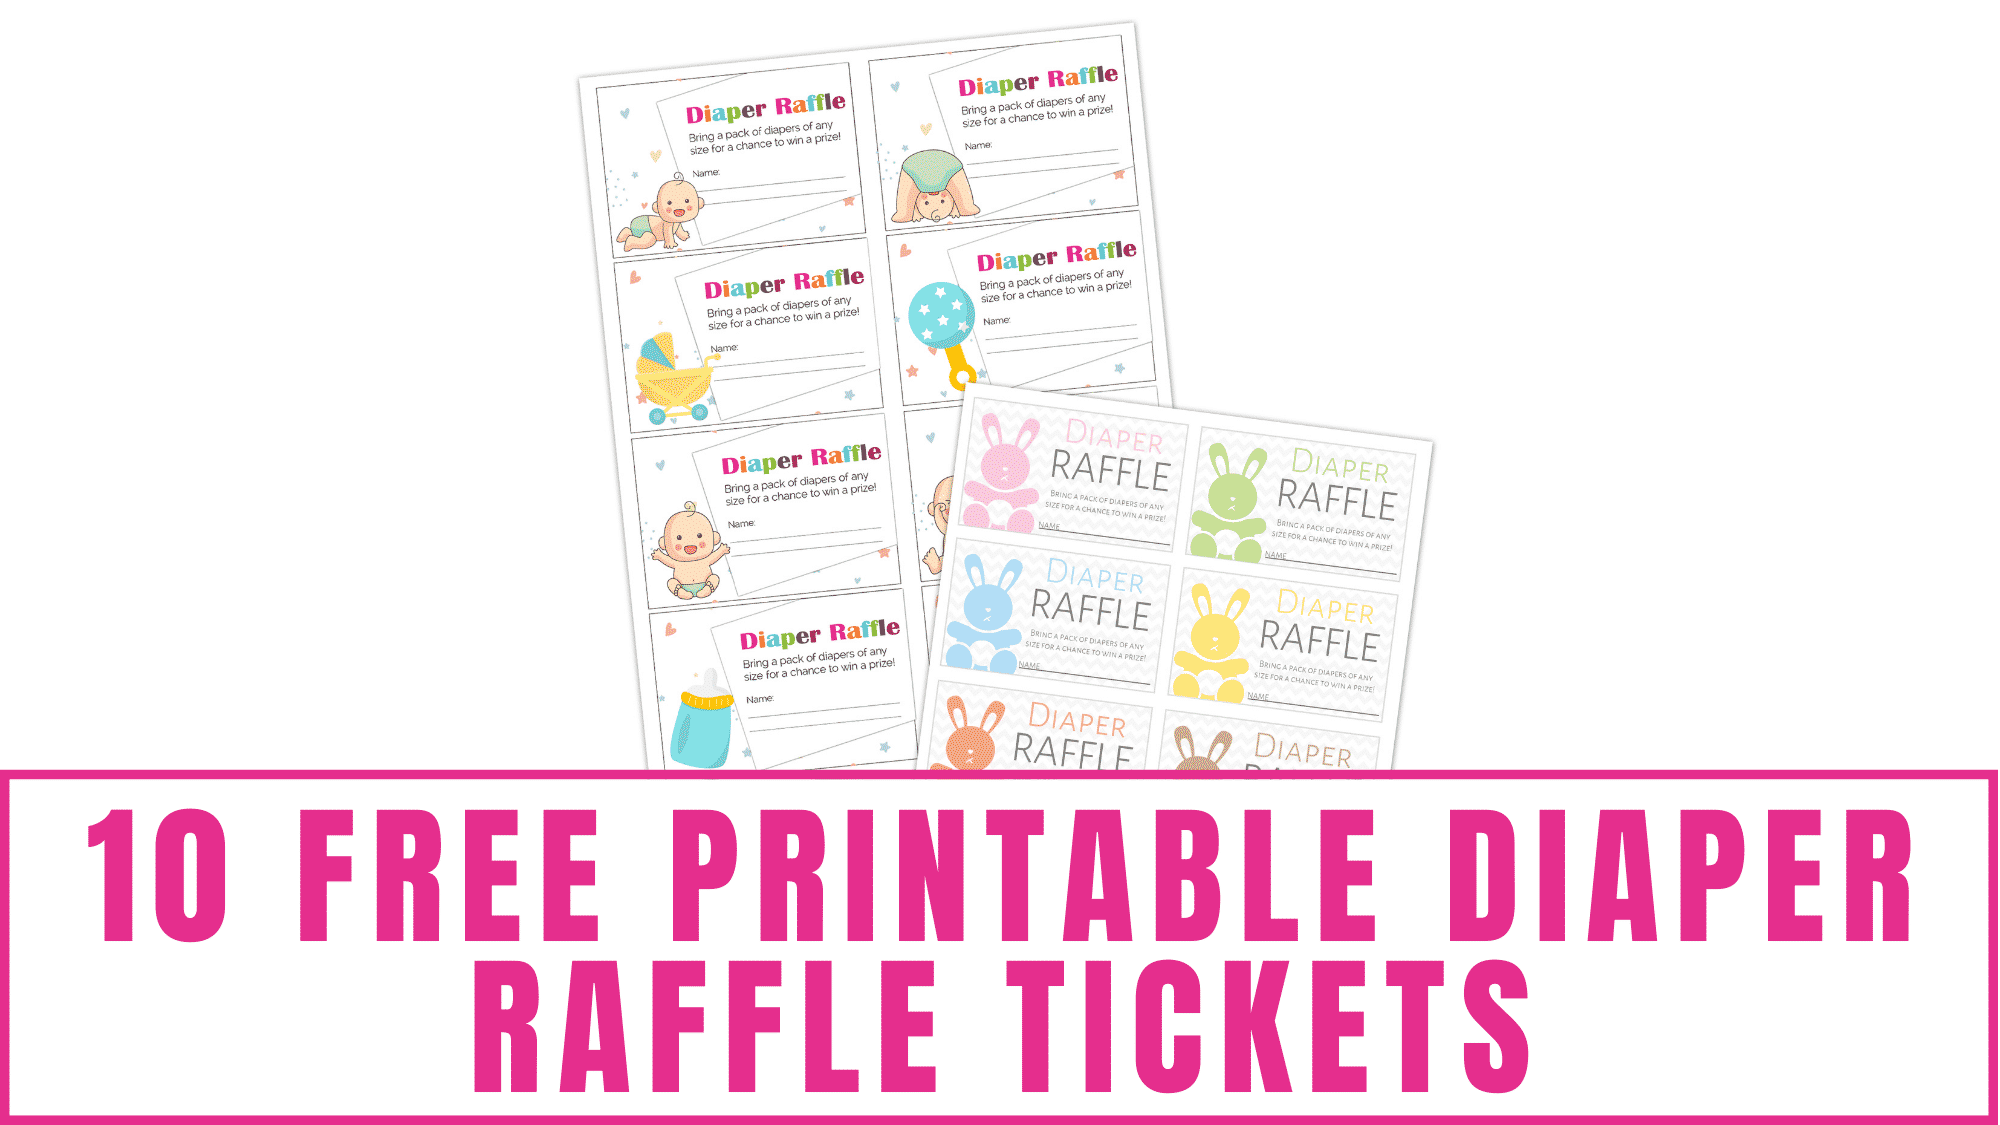 Use these free printable diaper raffle tickets to ensure you get things you need at your baby shower.